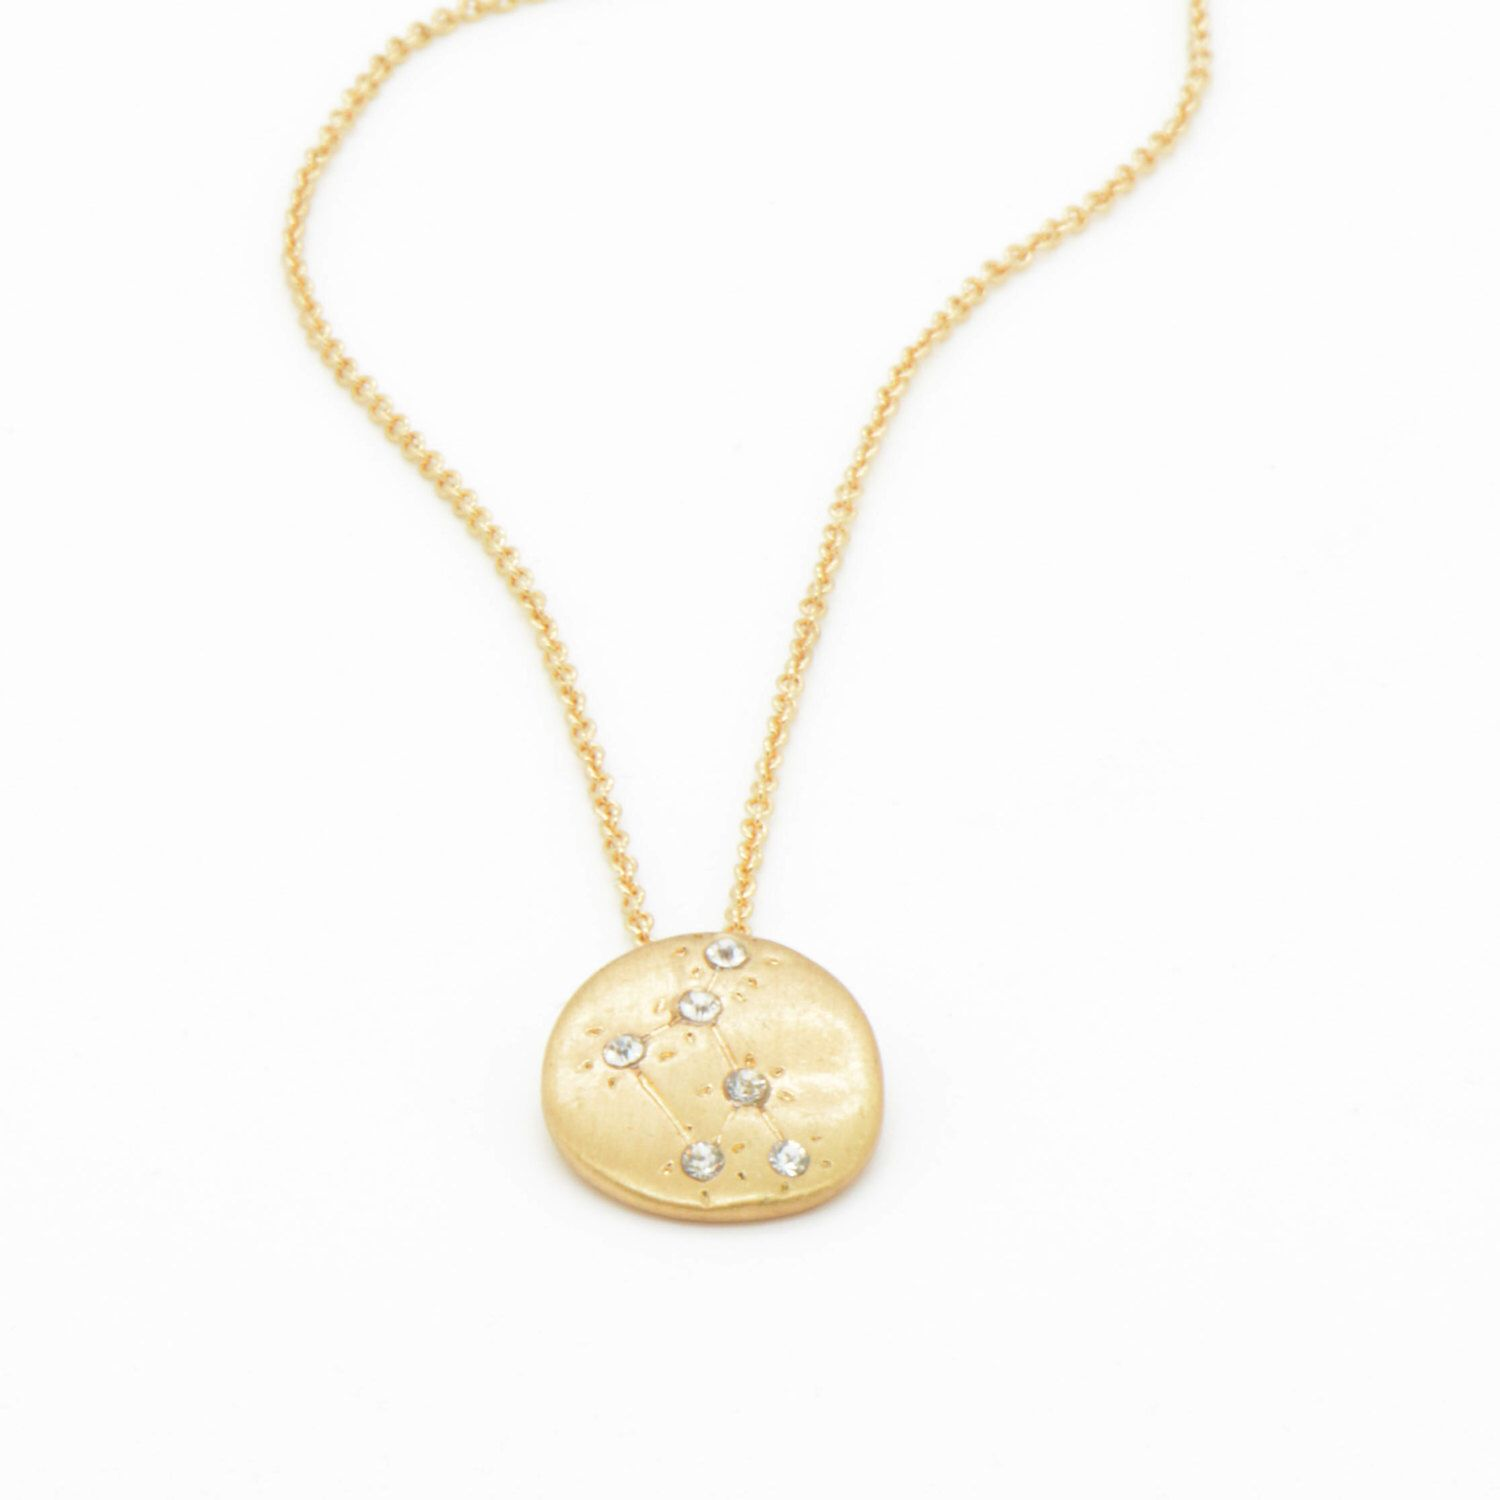 Hand made libra zodiac sign constellation necklace k gold plated